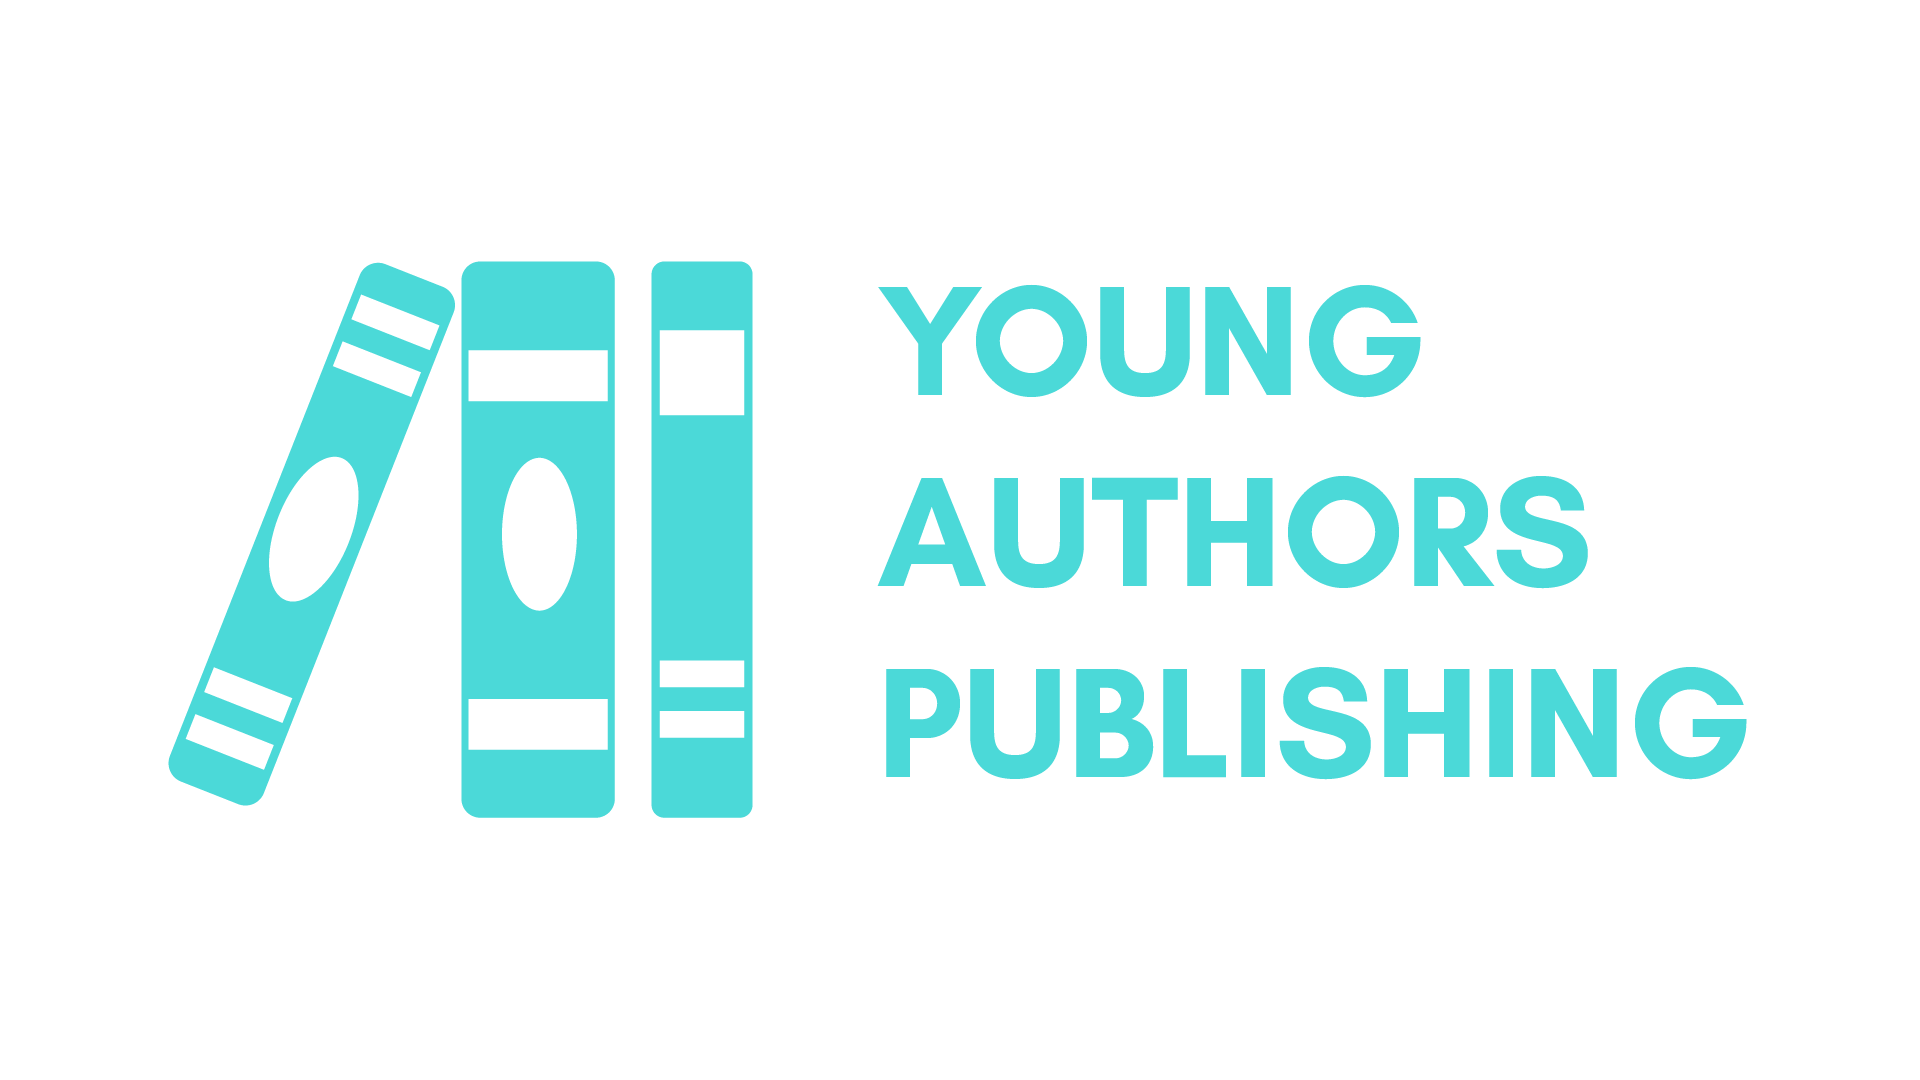 Young Authors Publishing - Black Owned